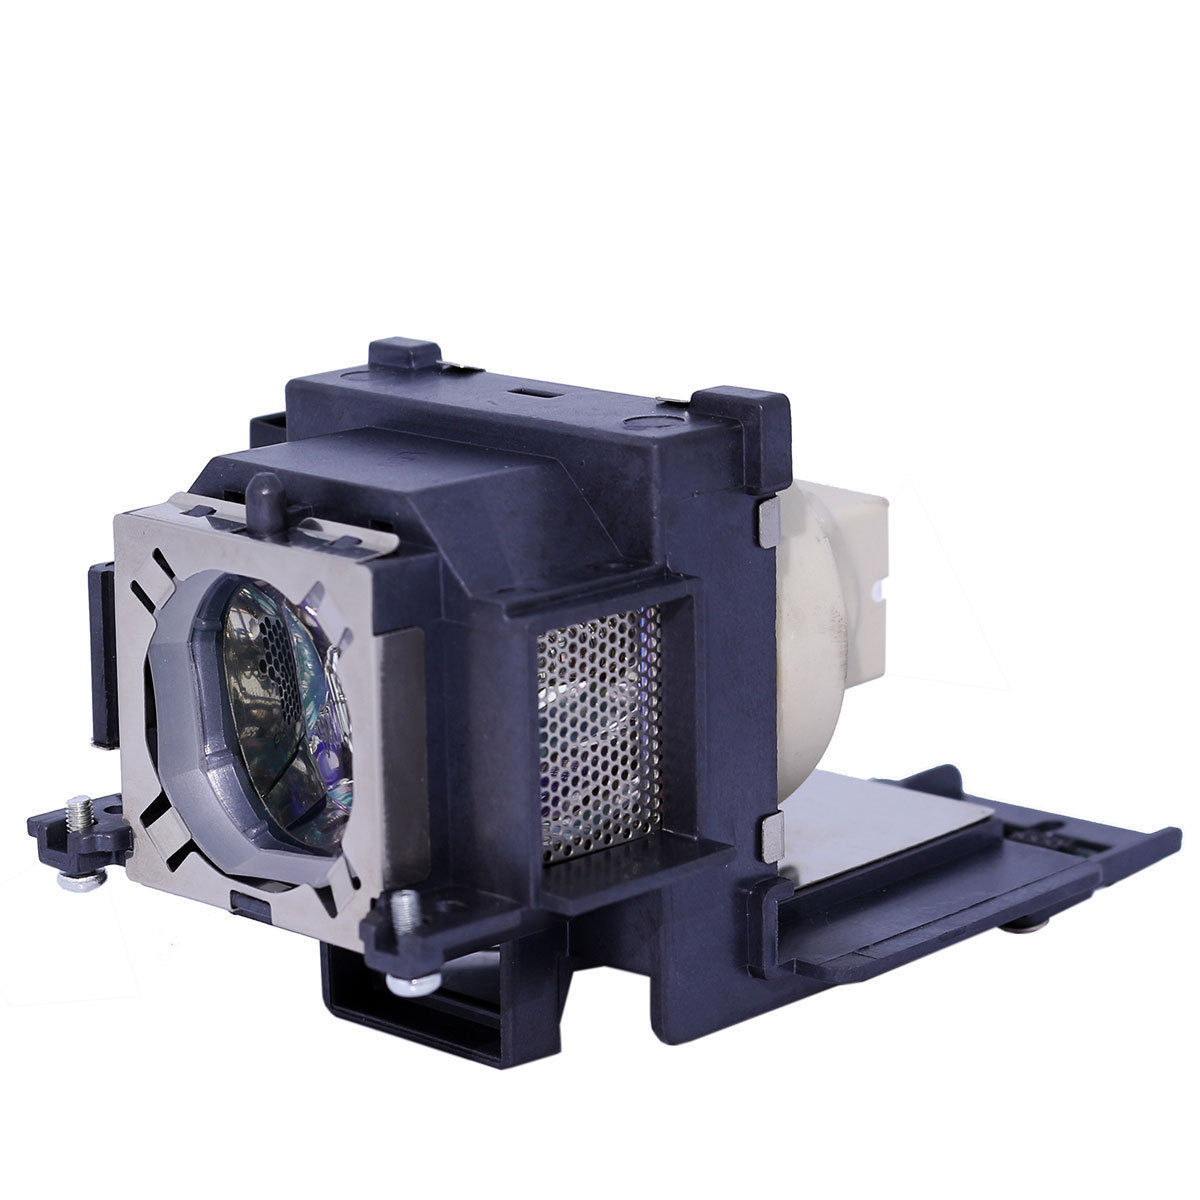 Projector Lamp Bulb ET-LAV100 for Panasonic PT-VX400 PT-VX400E PT-VX400EA PT-VW330 PT-VX400NTE PT-VX400NT PT-VX41 with housing projector lamp bulb et la701 etla701 for panasonic pt l711nt pt l711x pt l501e with housing